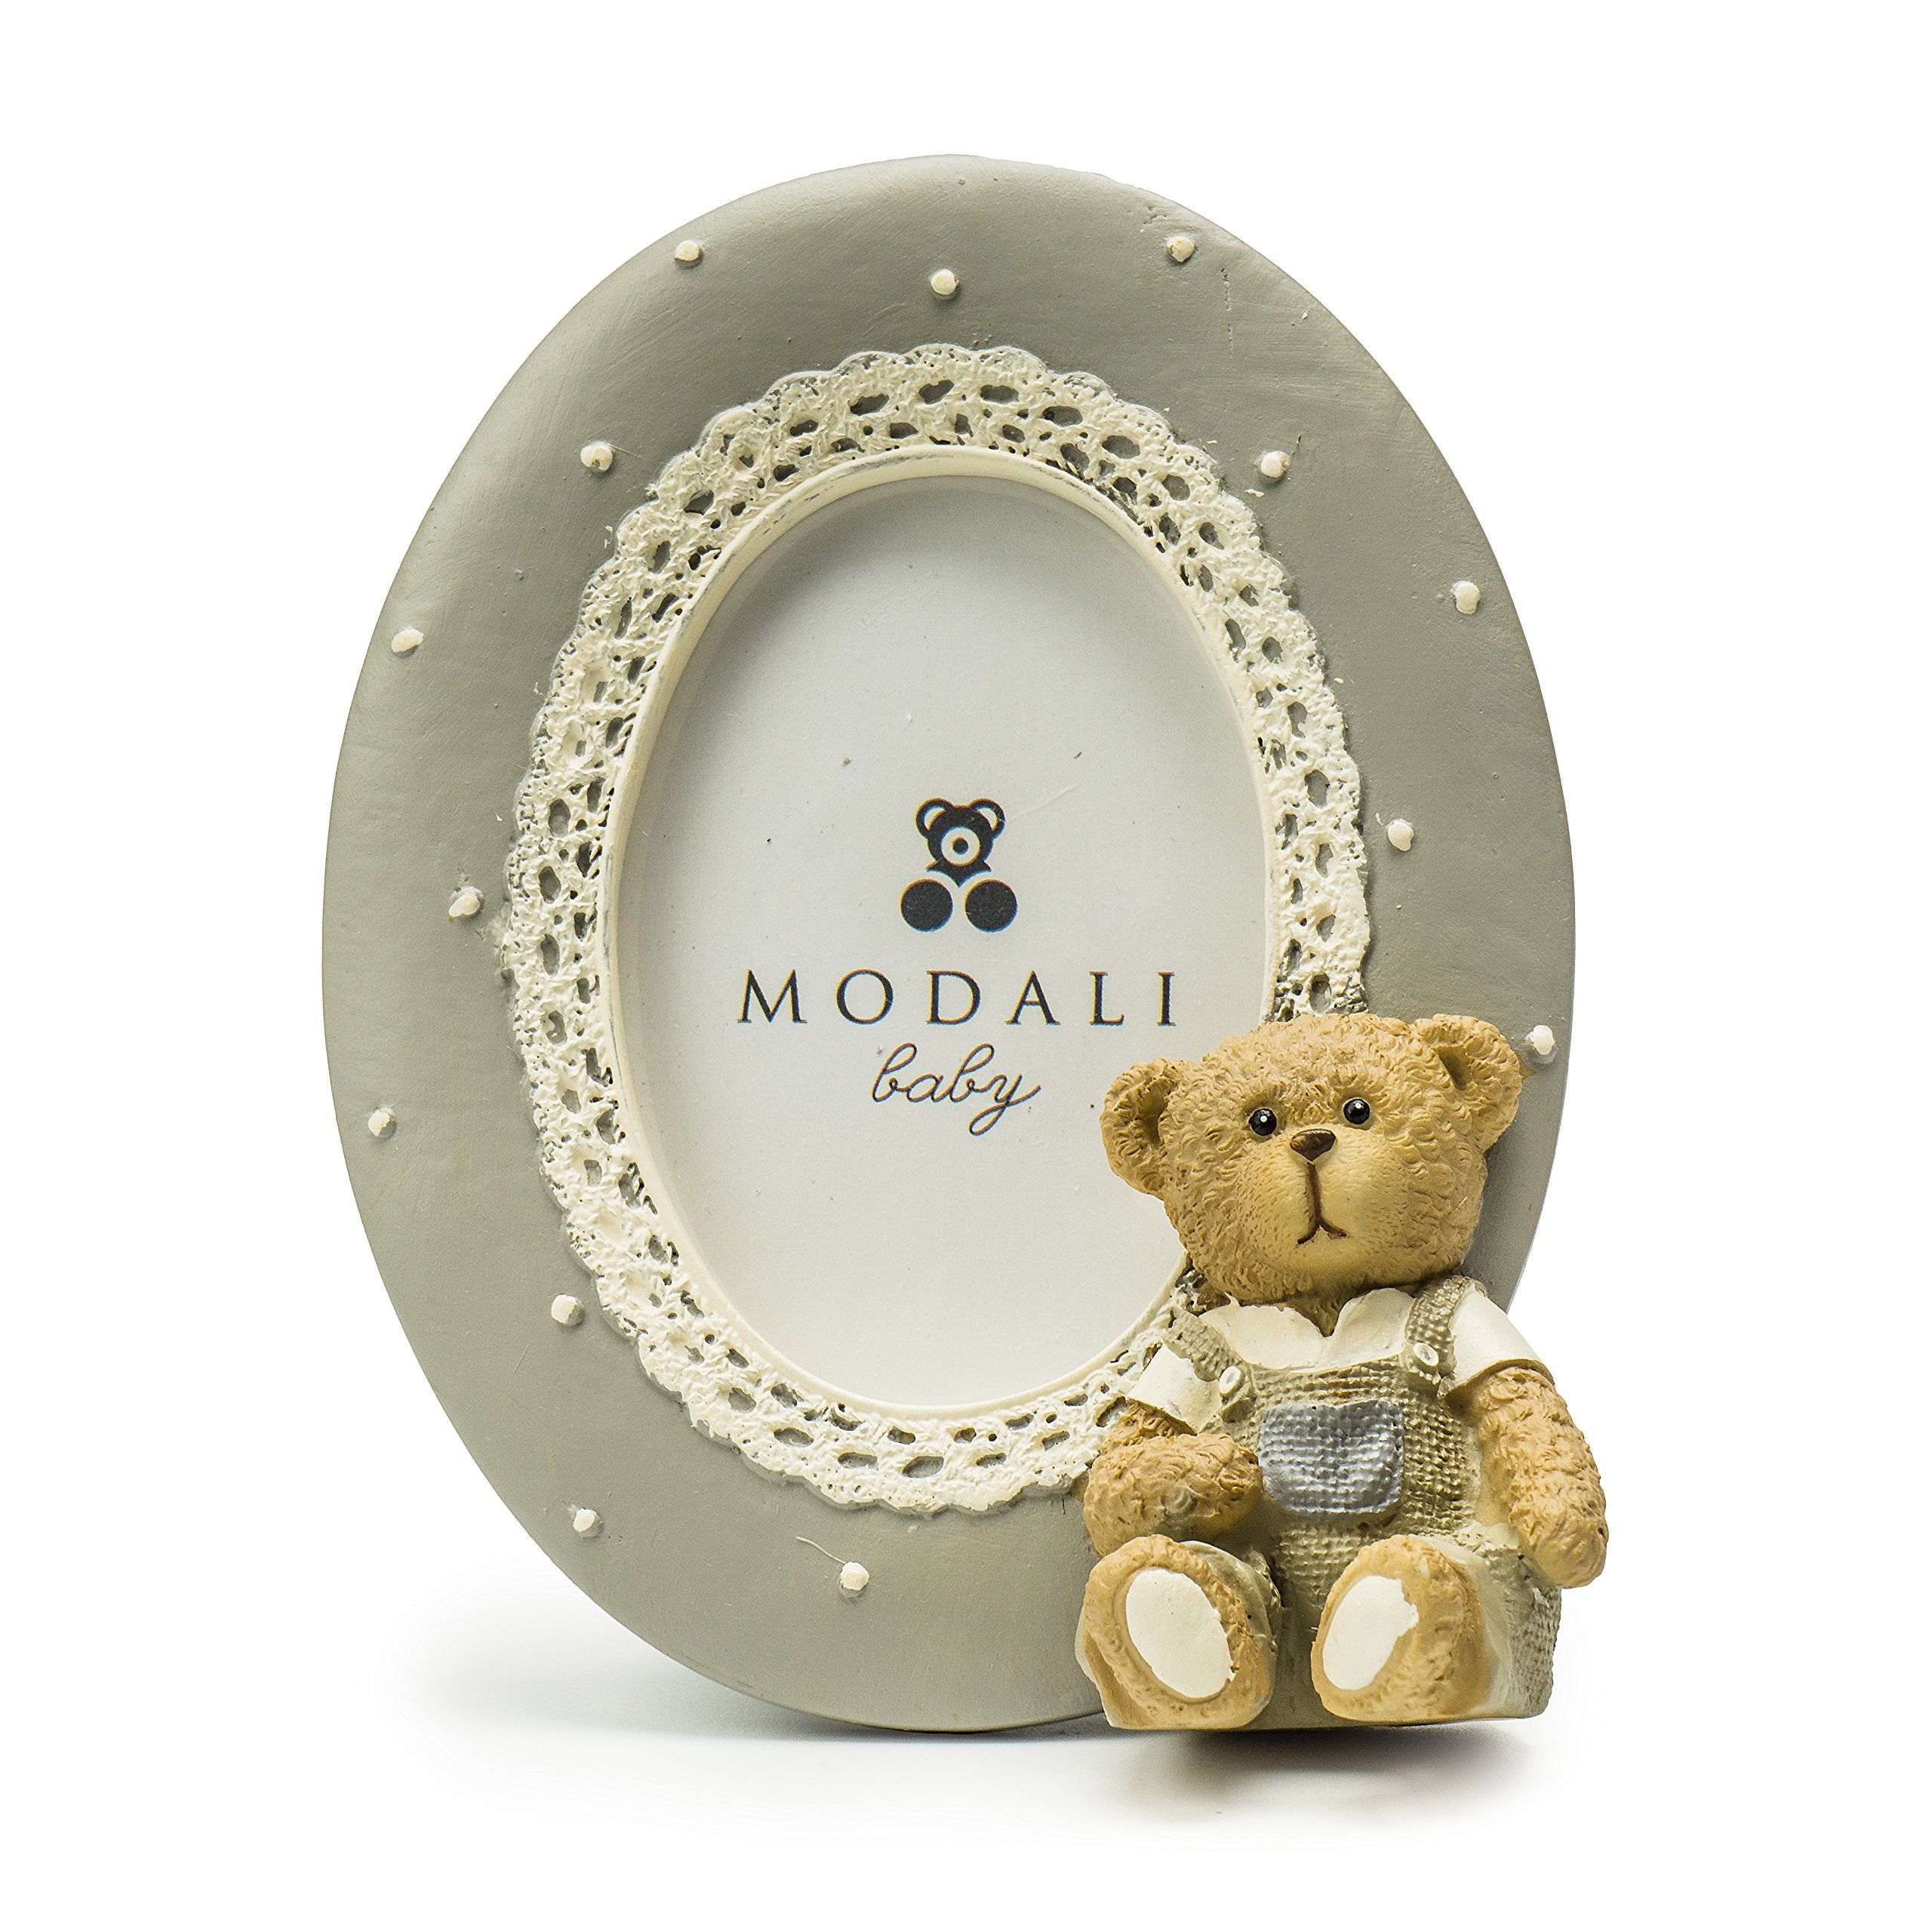 Modali Baby Fine & Elegant Handpainted Baby Photo Frame 3x3'' with Teddy Boy Bear